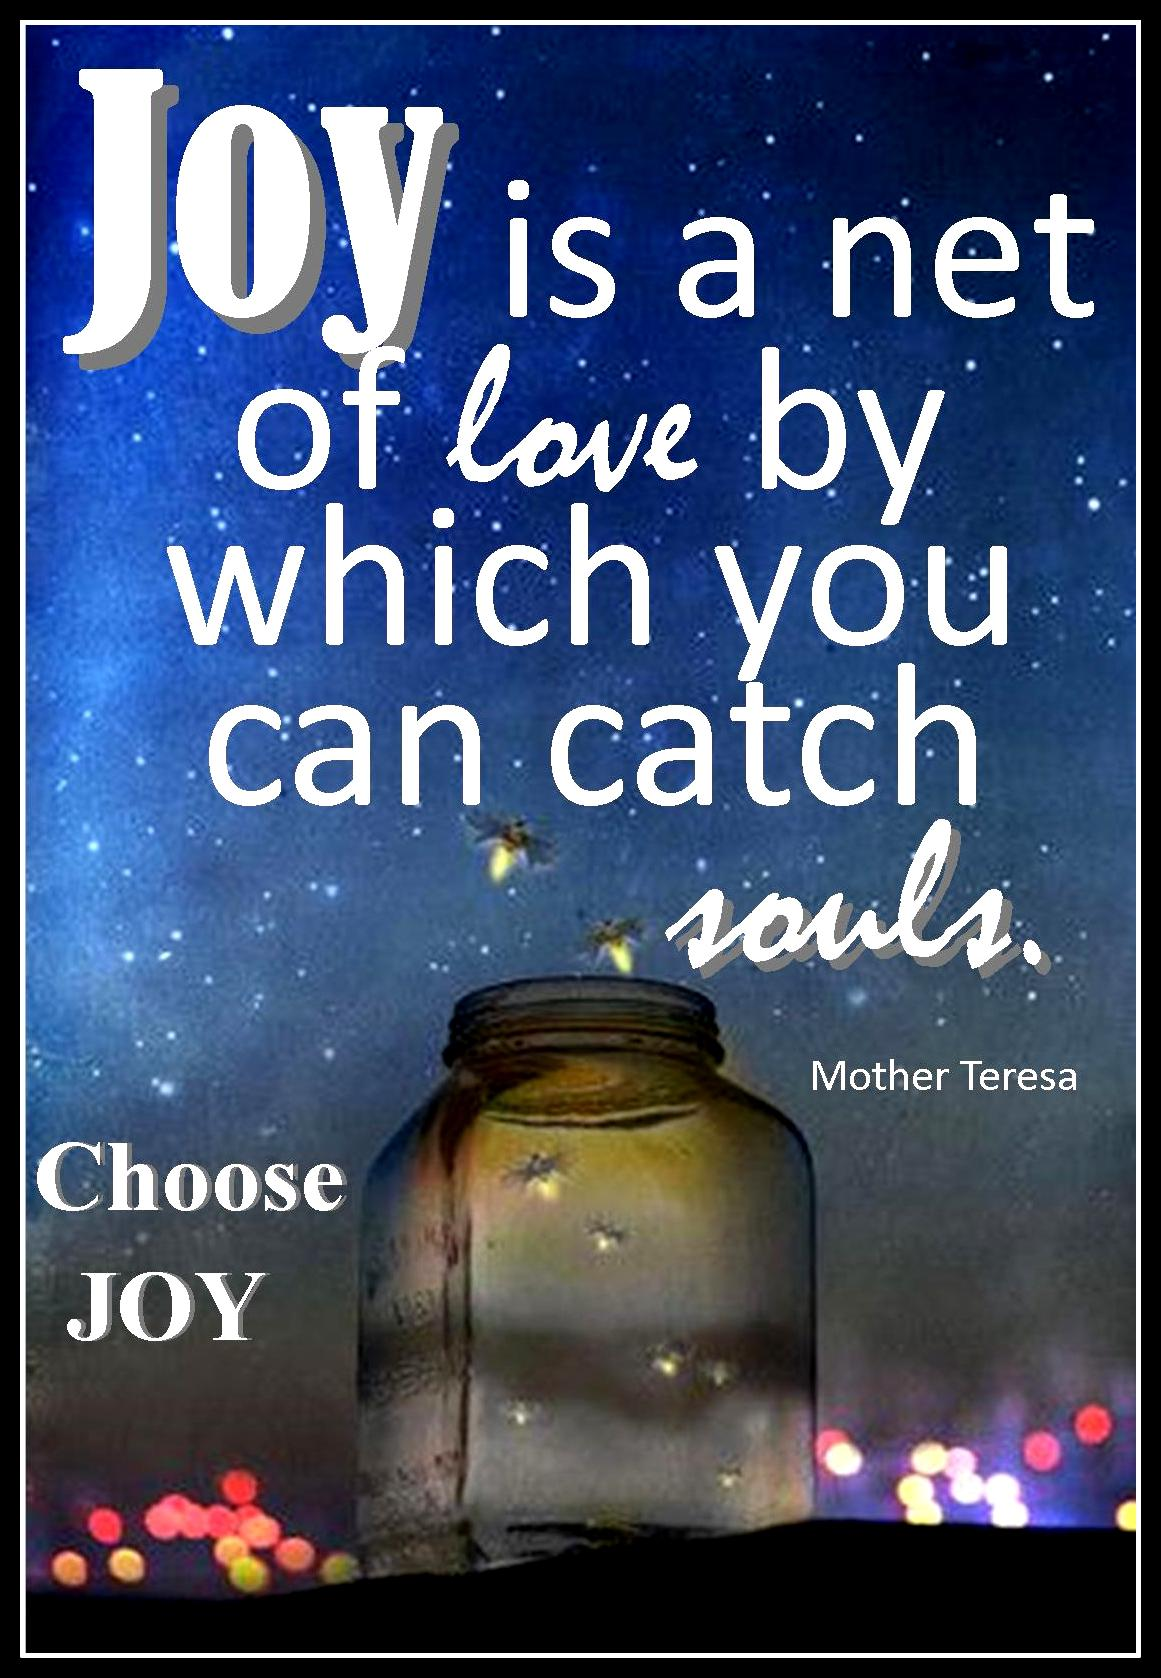 choosejoyquote_motherteresa